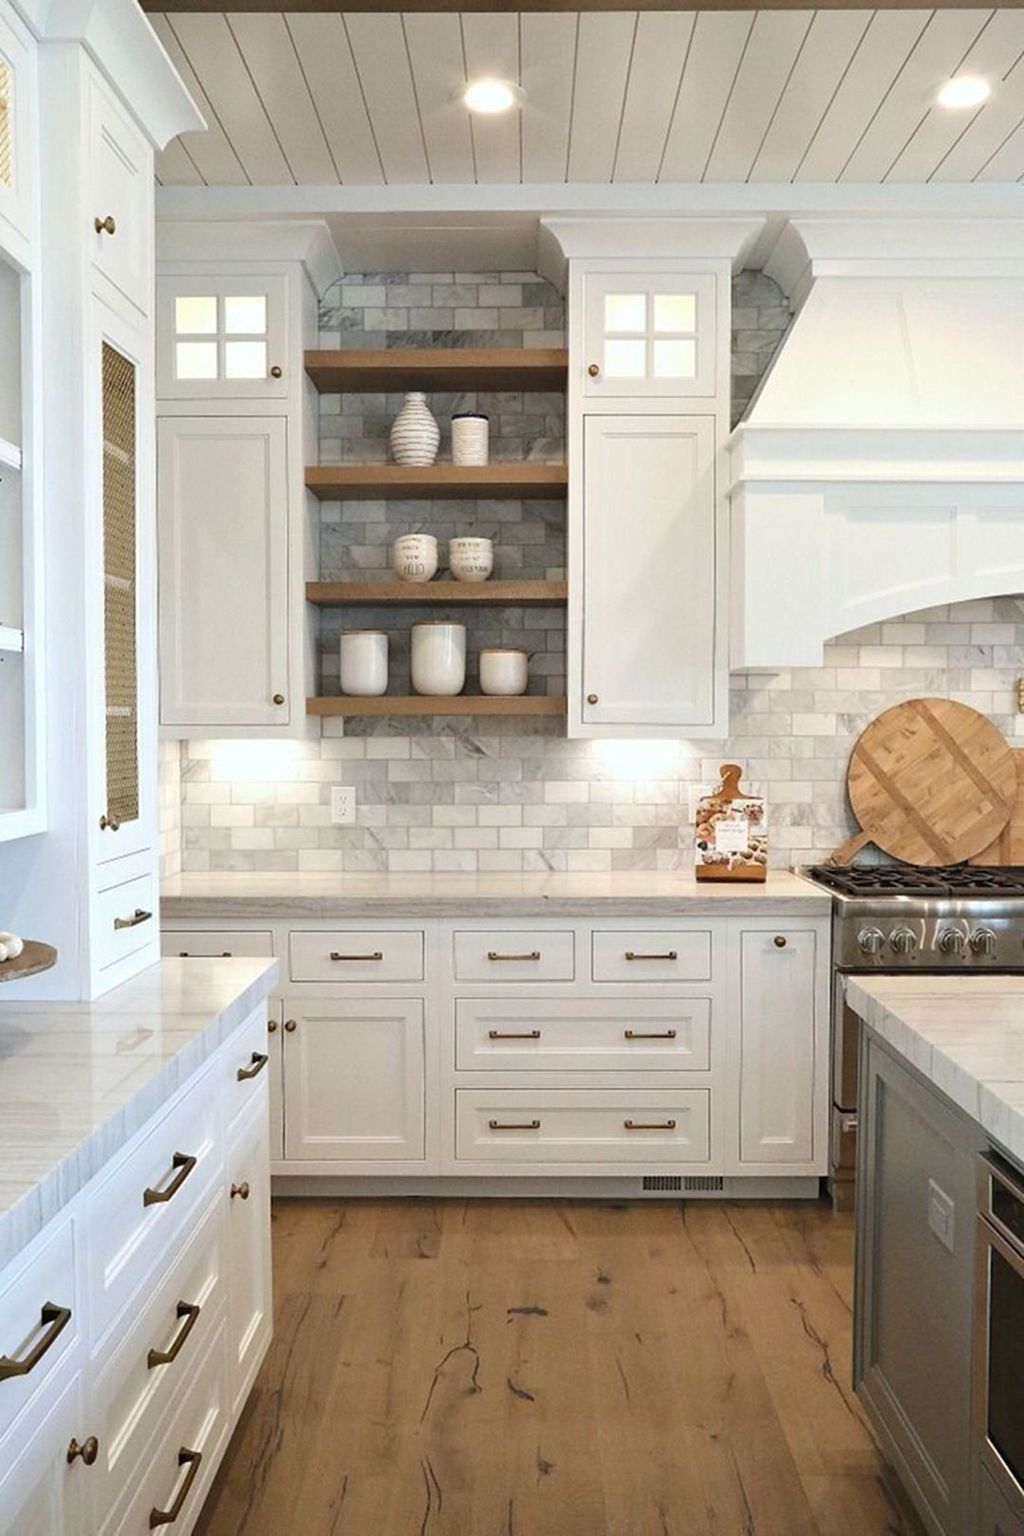 Superb Kitchen Design Ideas That You Can Try 27